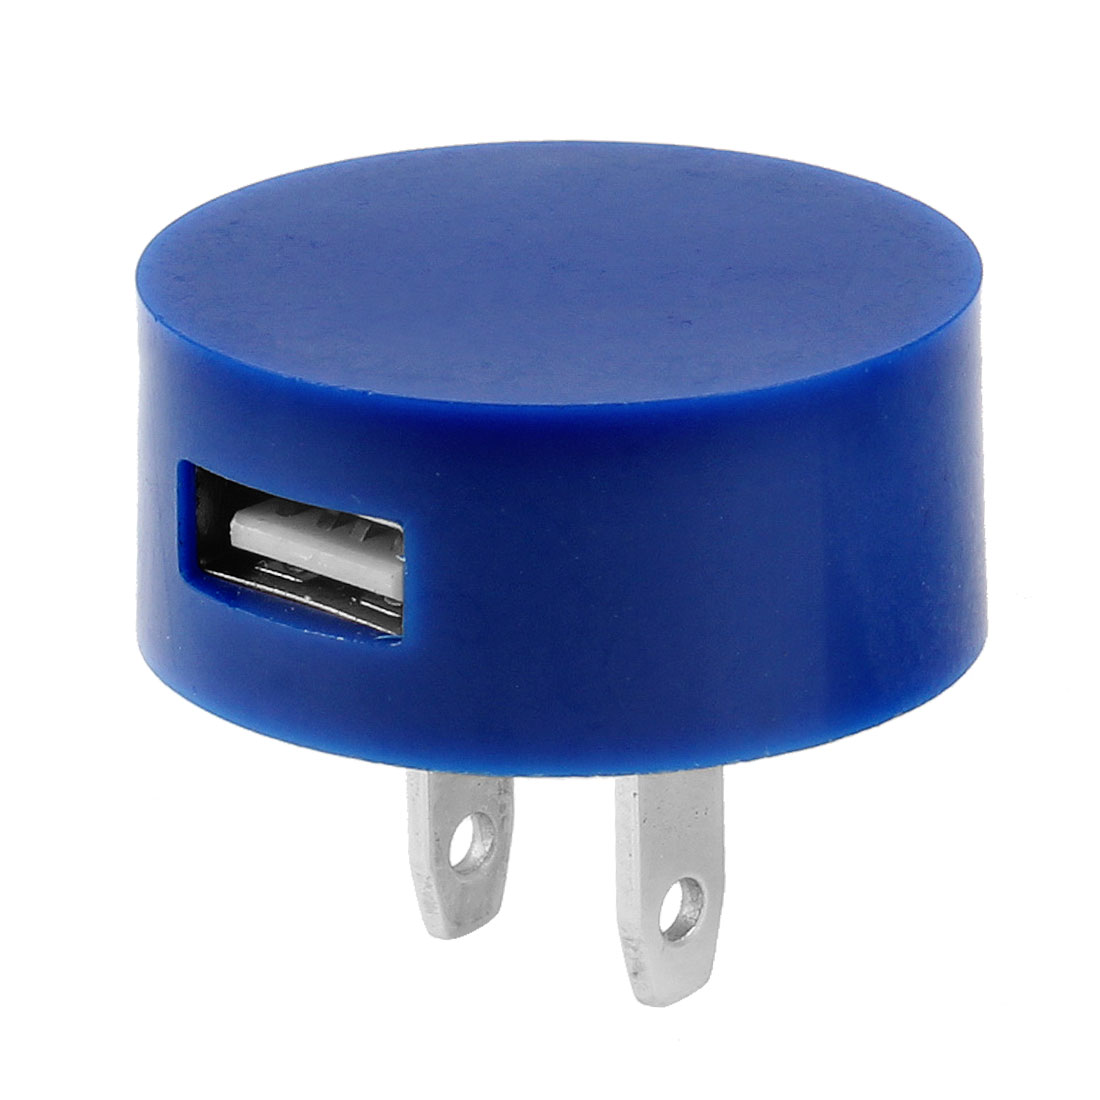 US Plug 100-240V Travel Blue Charger USB Port Power Adapter for Smart Phone